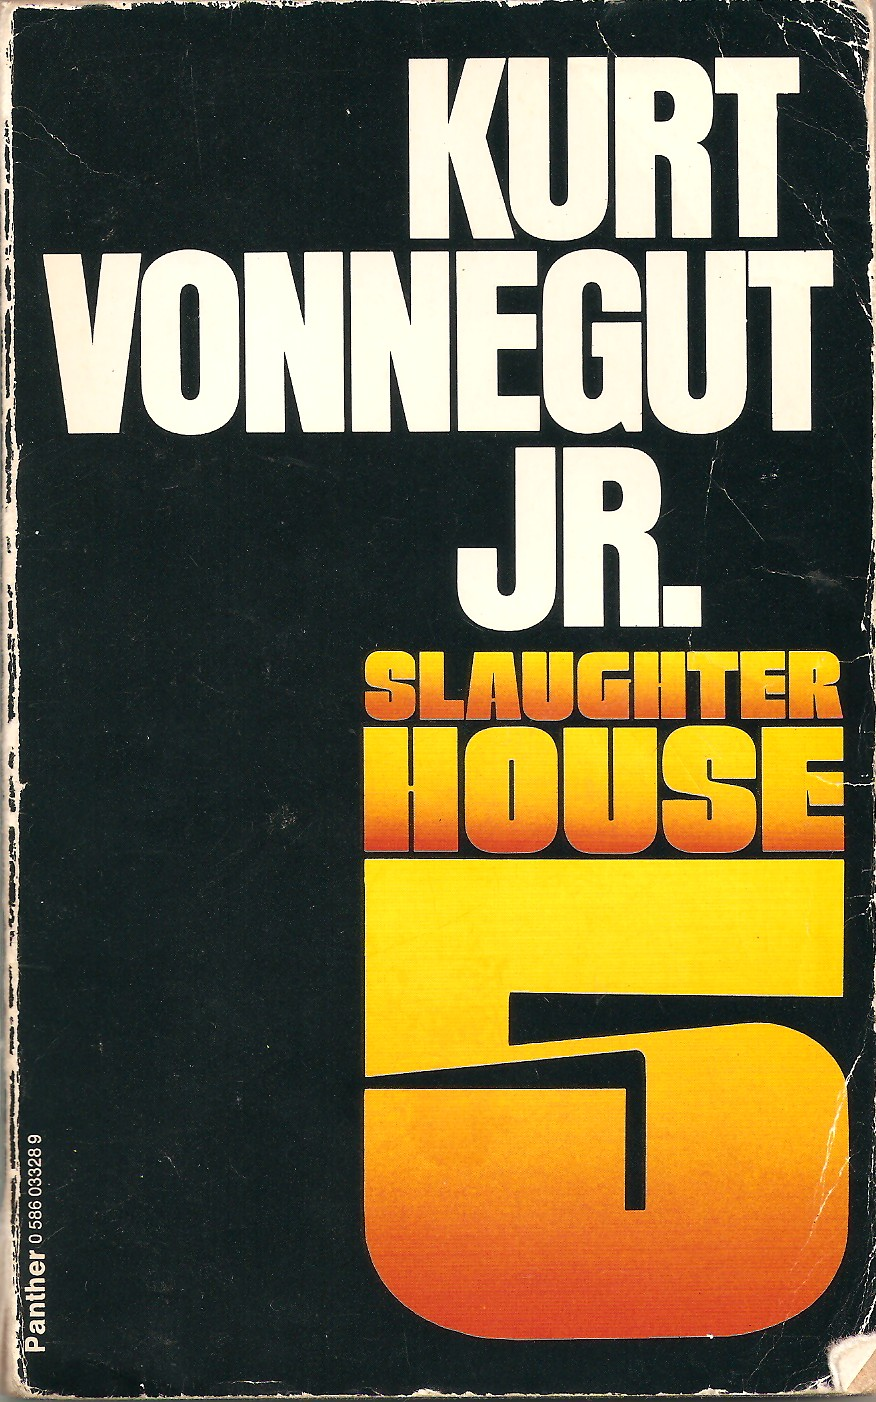 A literary analysis of slaughterhouse five by kurt vonnegut